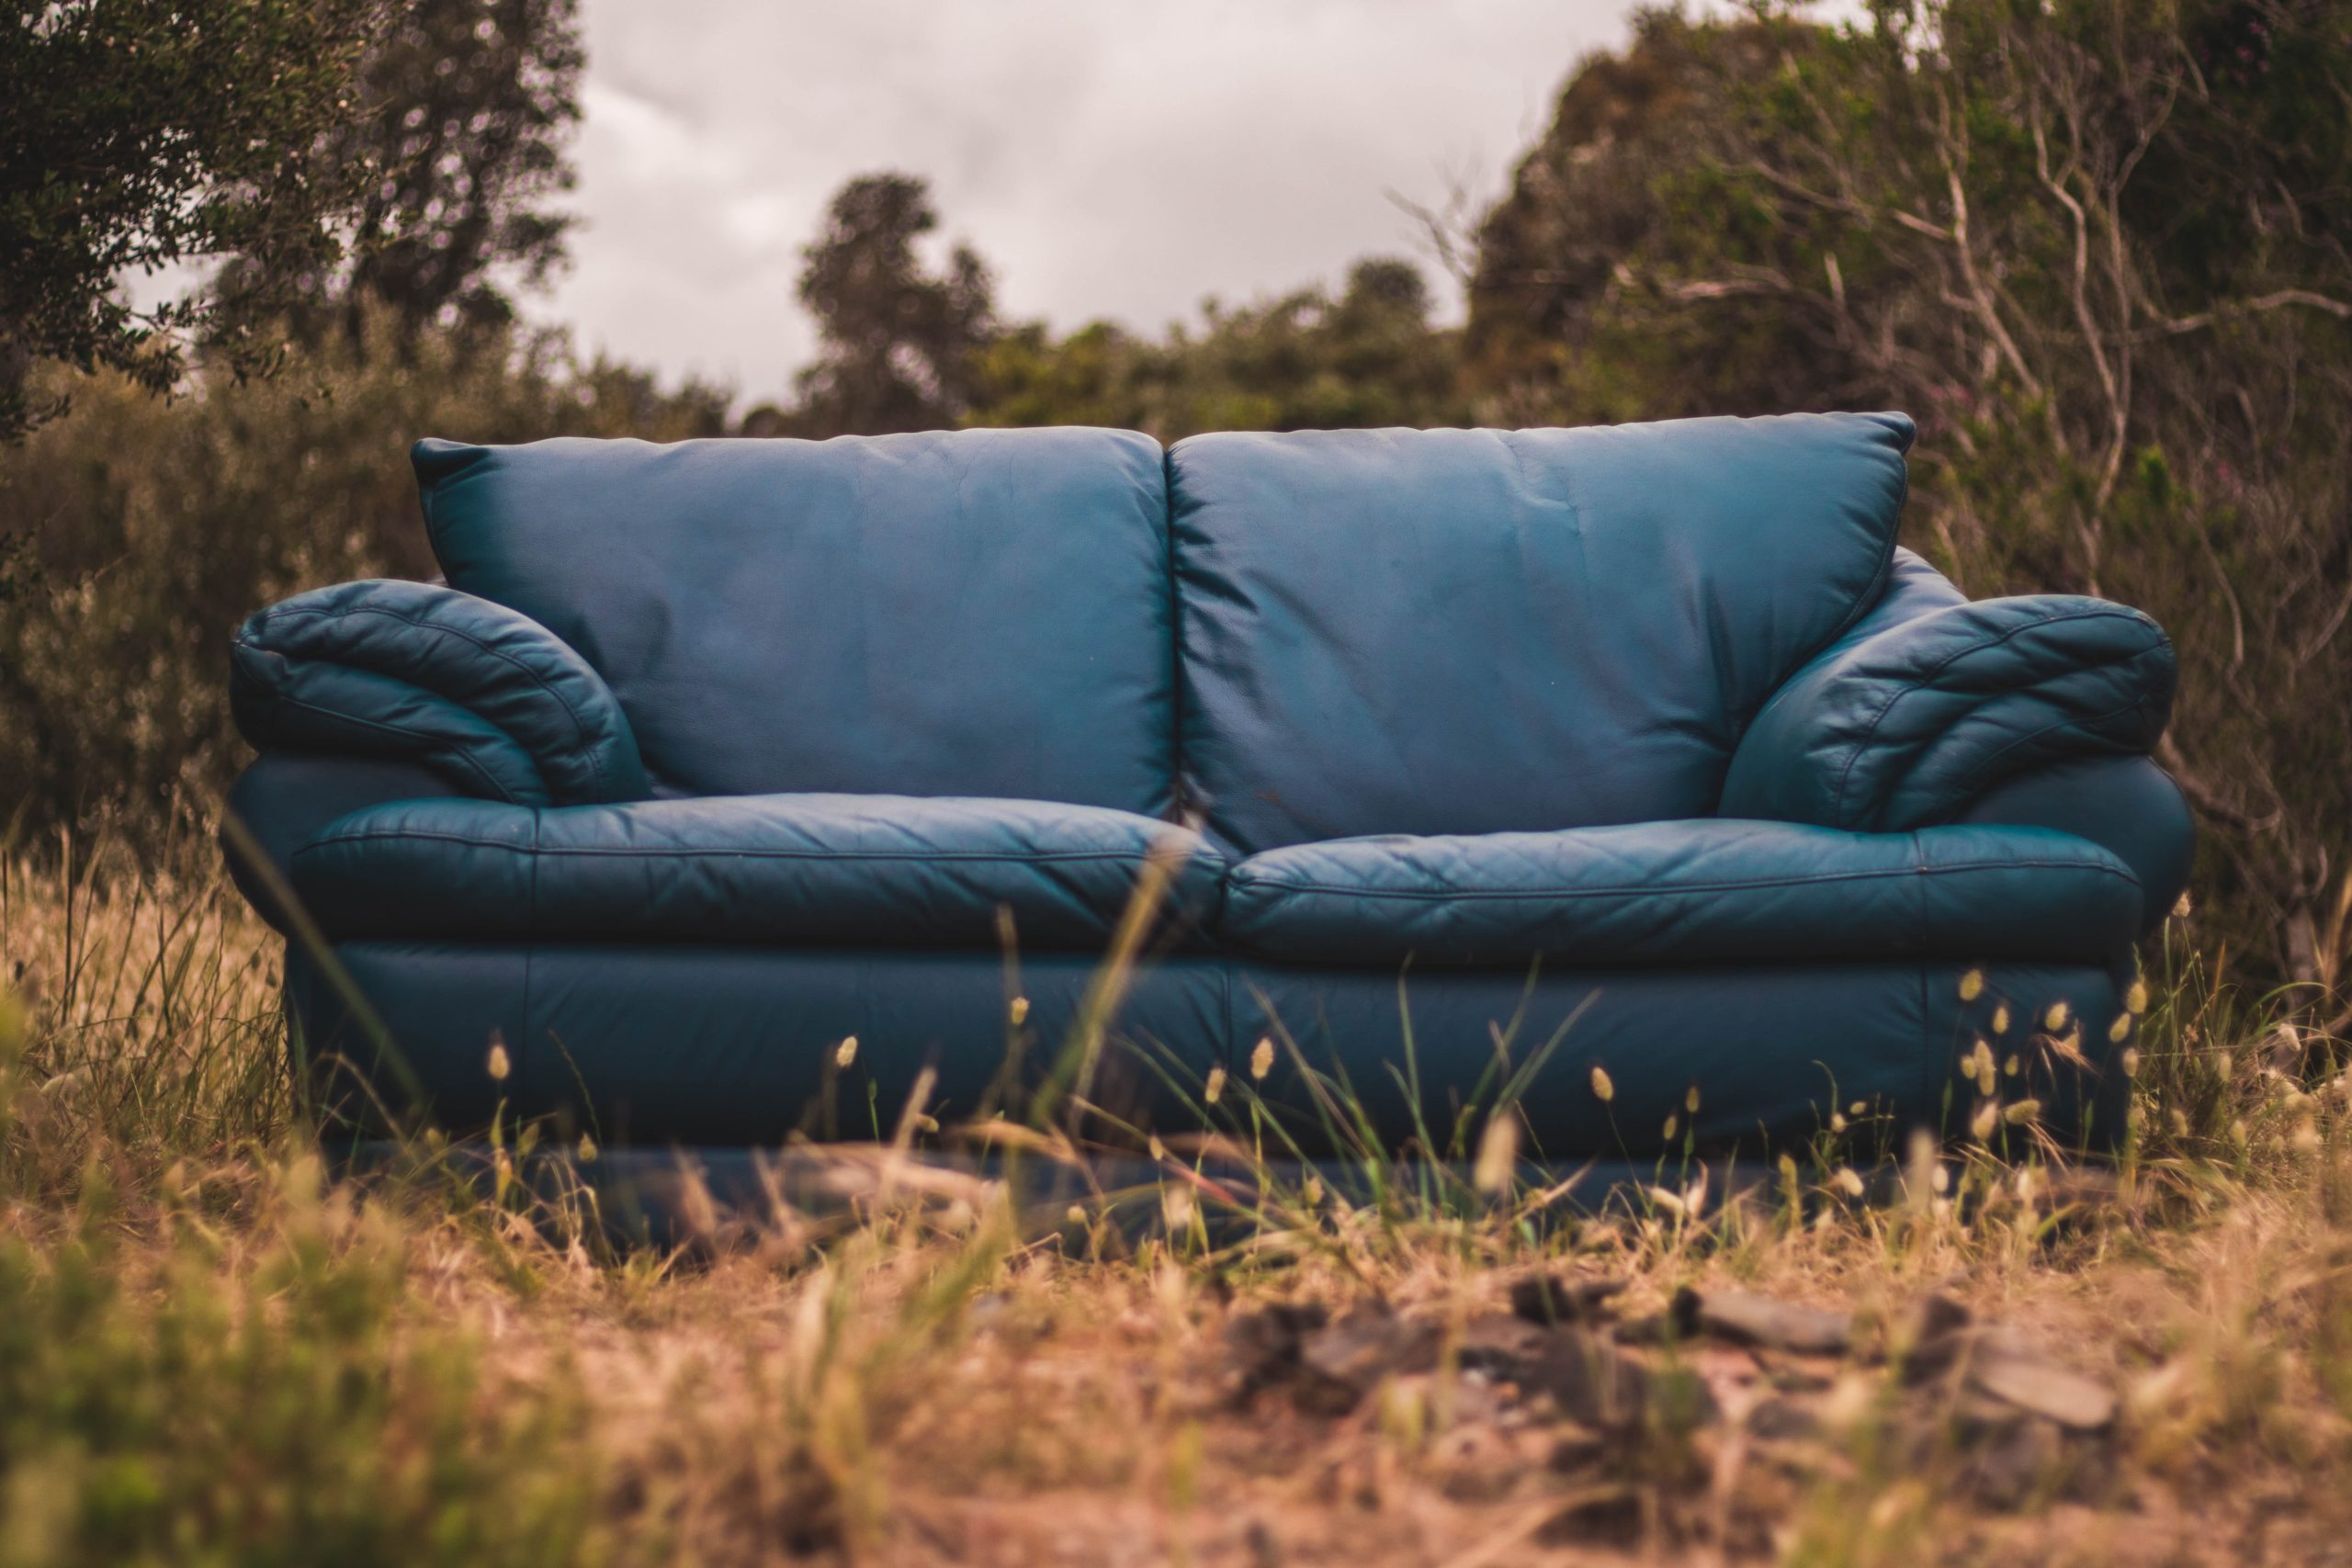 The conscious couch